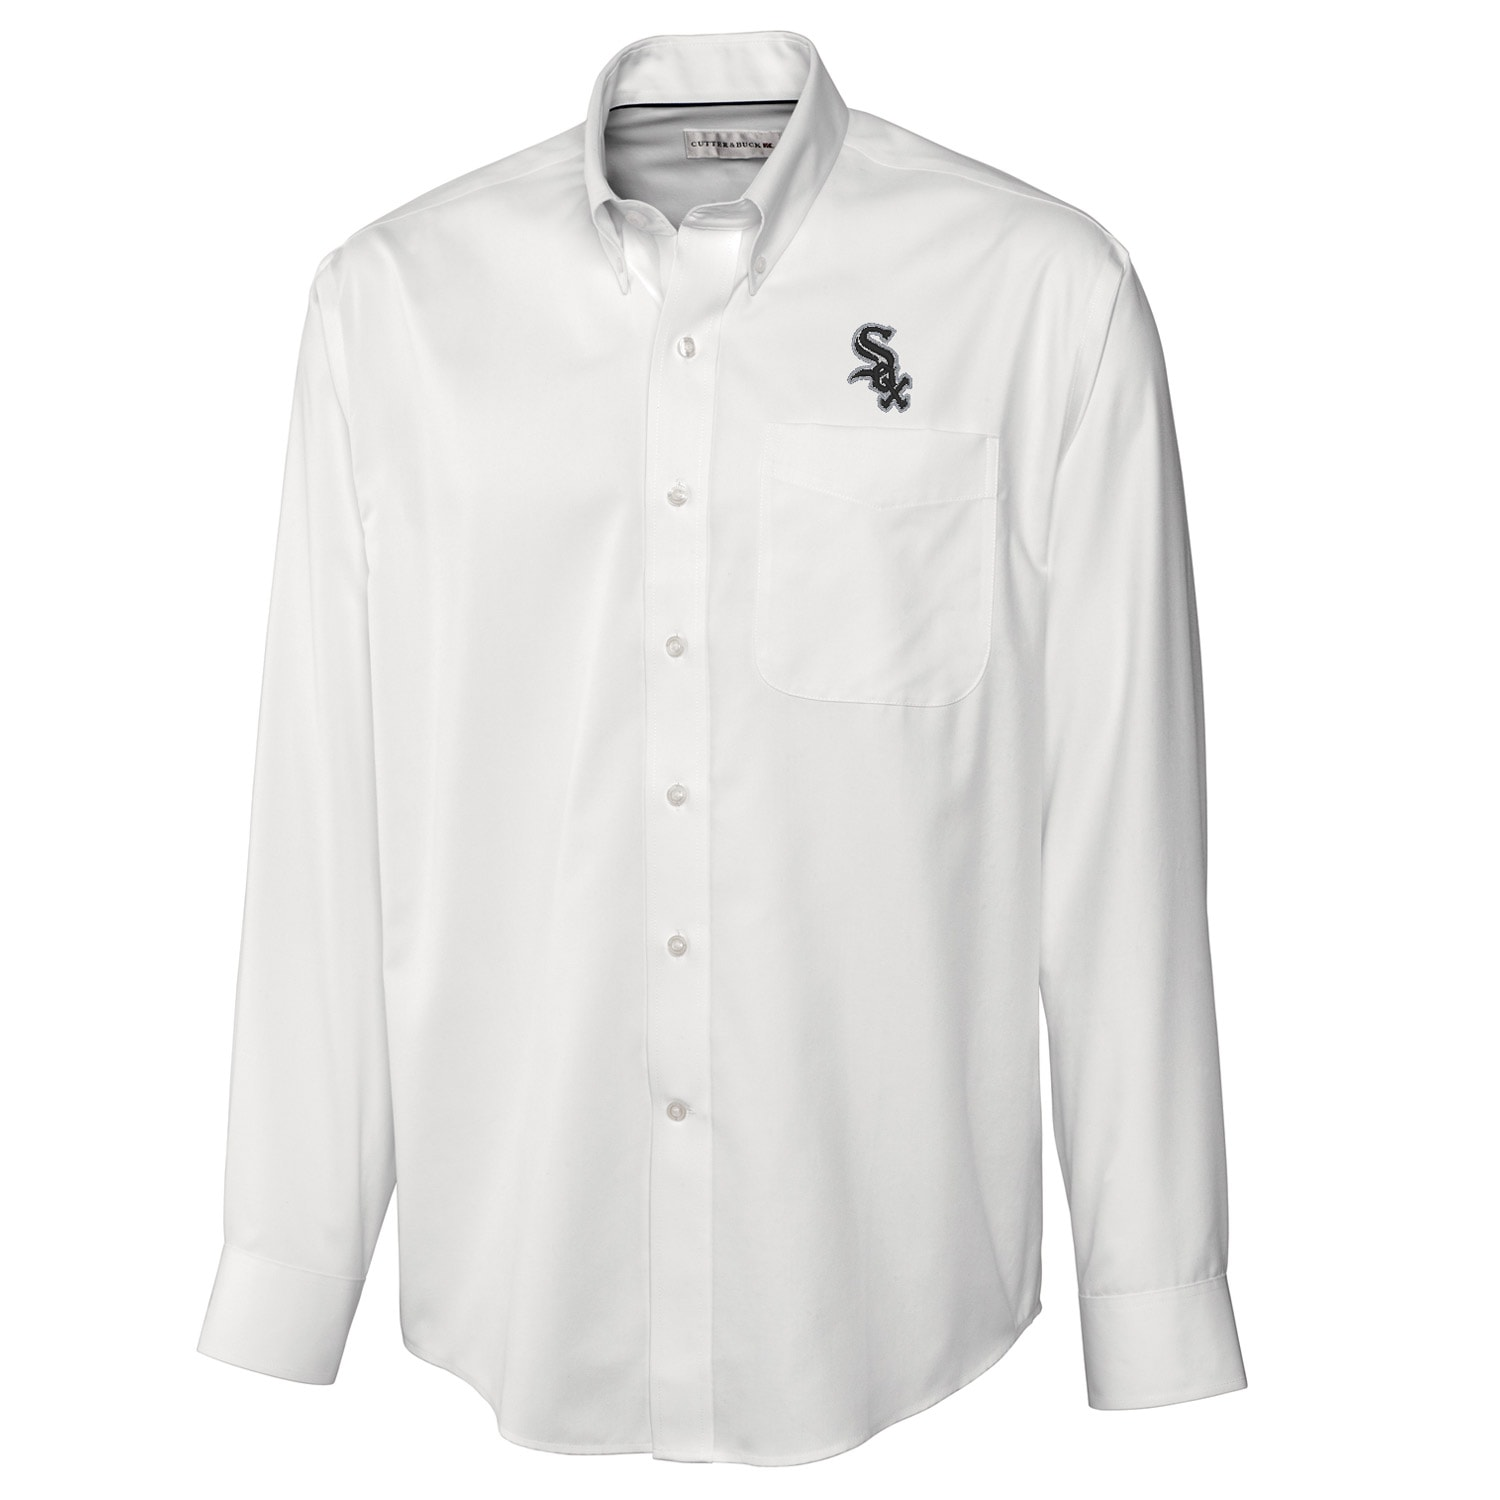 Chicago White Sox Cutter & Buck Big & Tall Epic Easy Care Fine Twill Long Sleeve Shirt - White